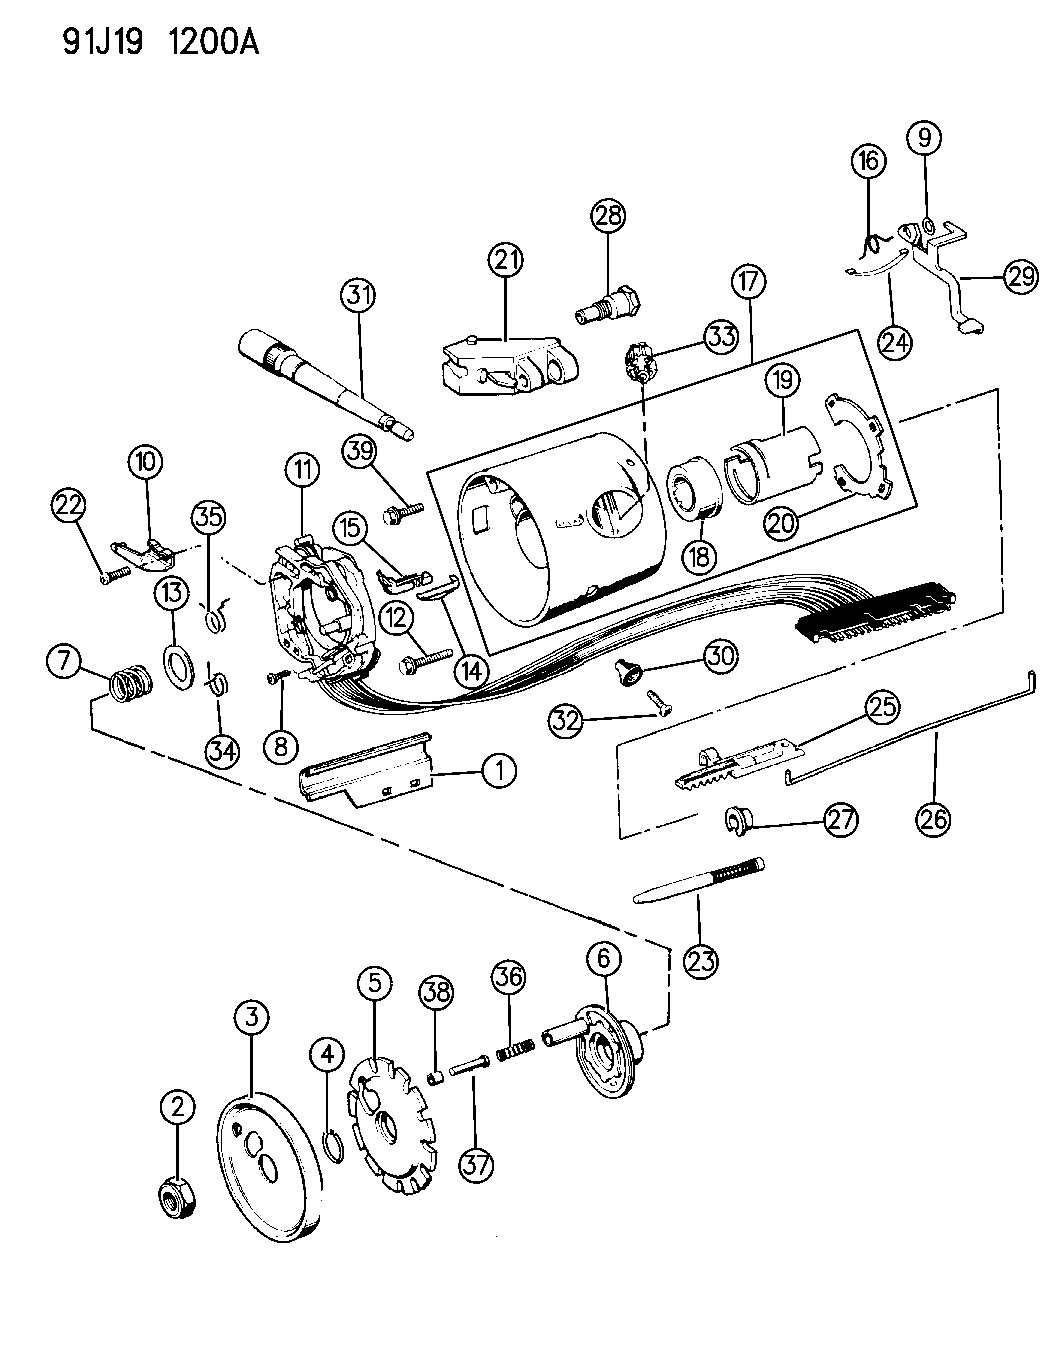 Service manual [Changeing Gear Shift Assembly 2003 Jeep